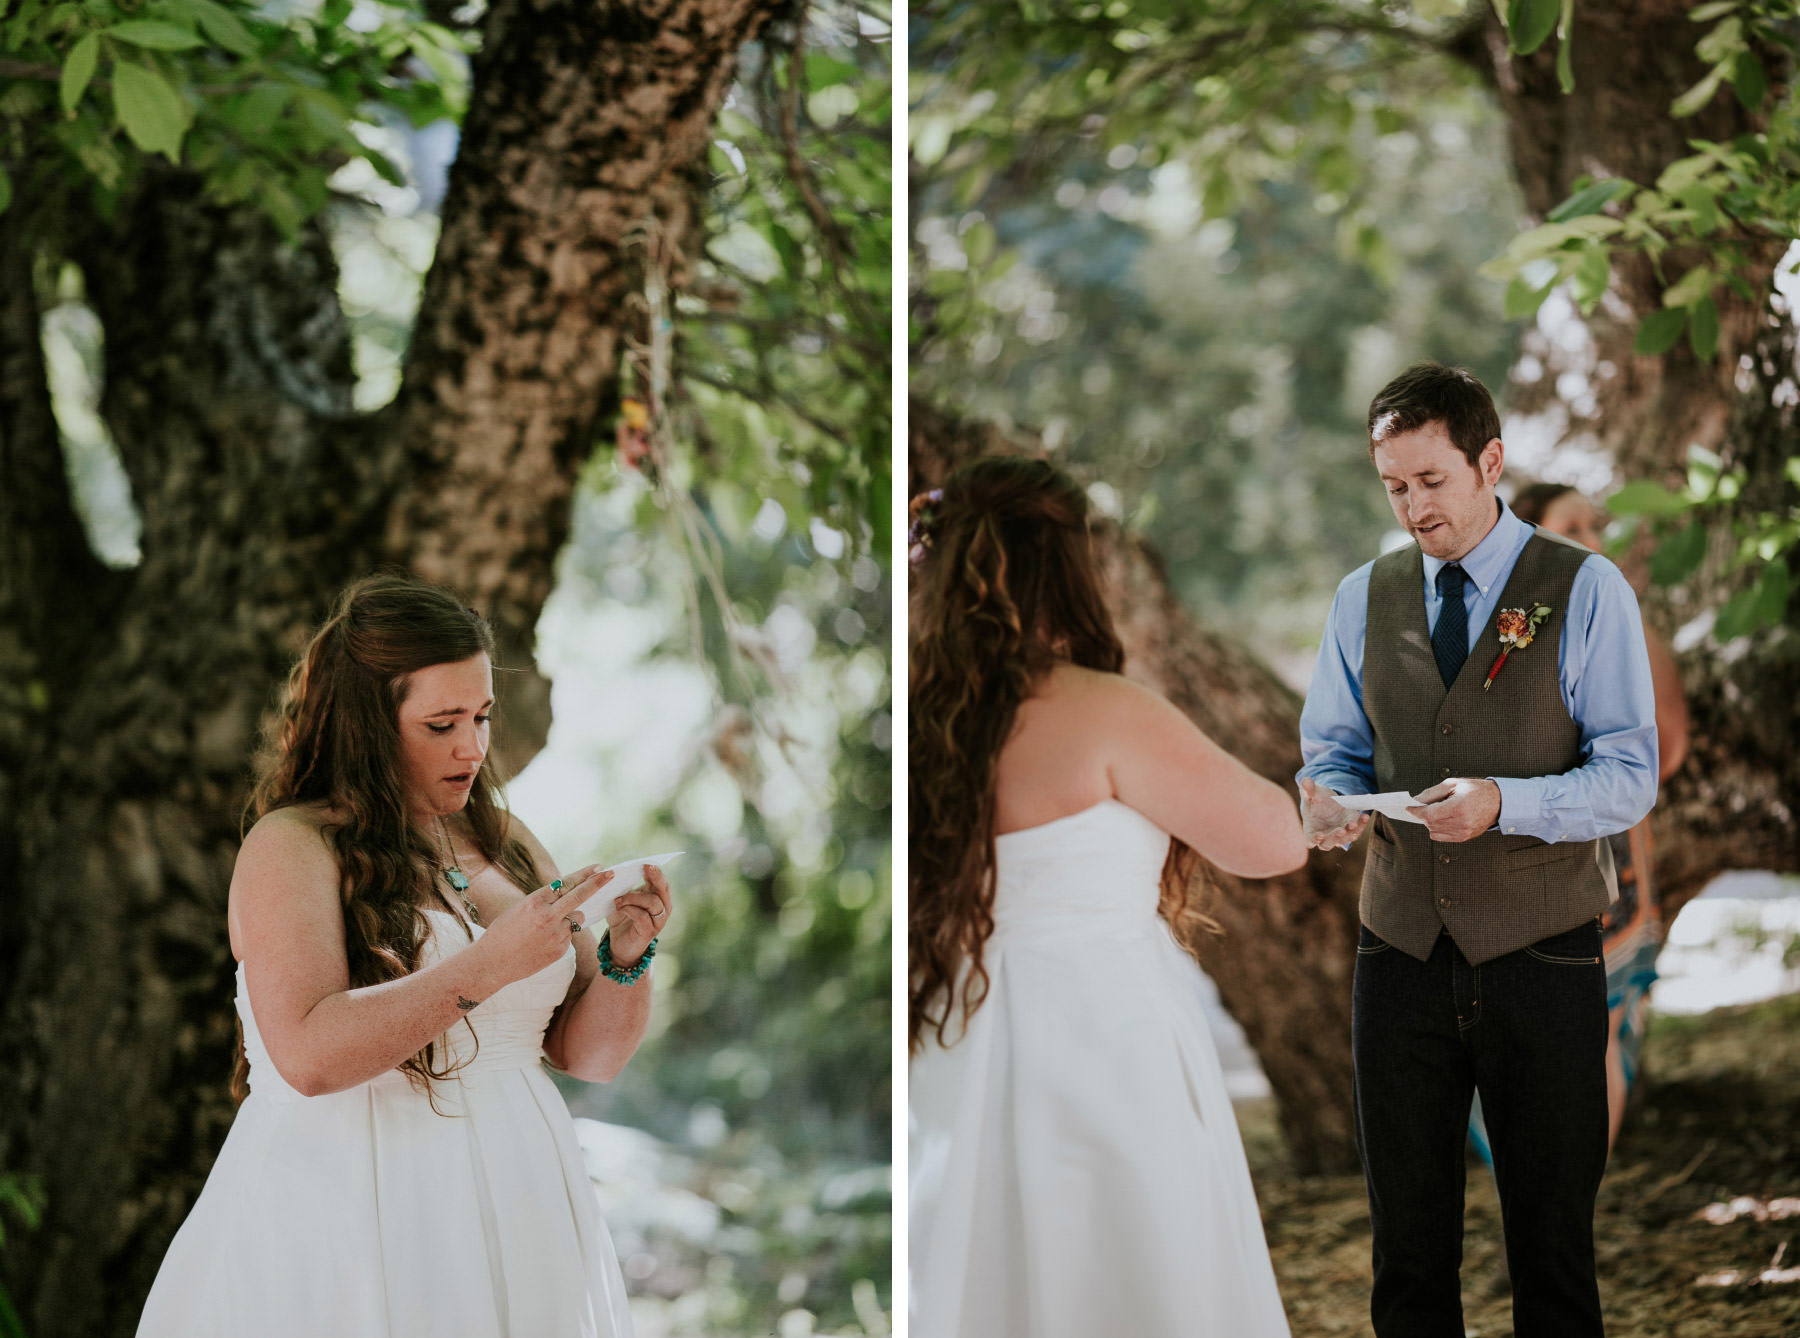 Baileys Palomar Mountain wedding